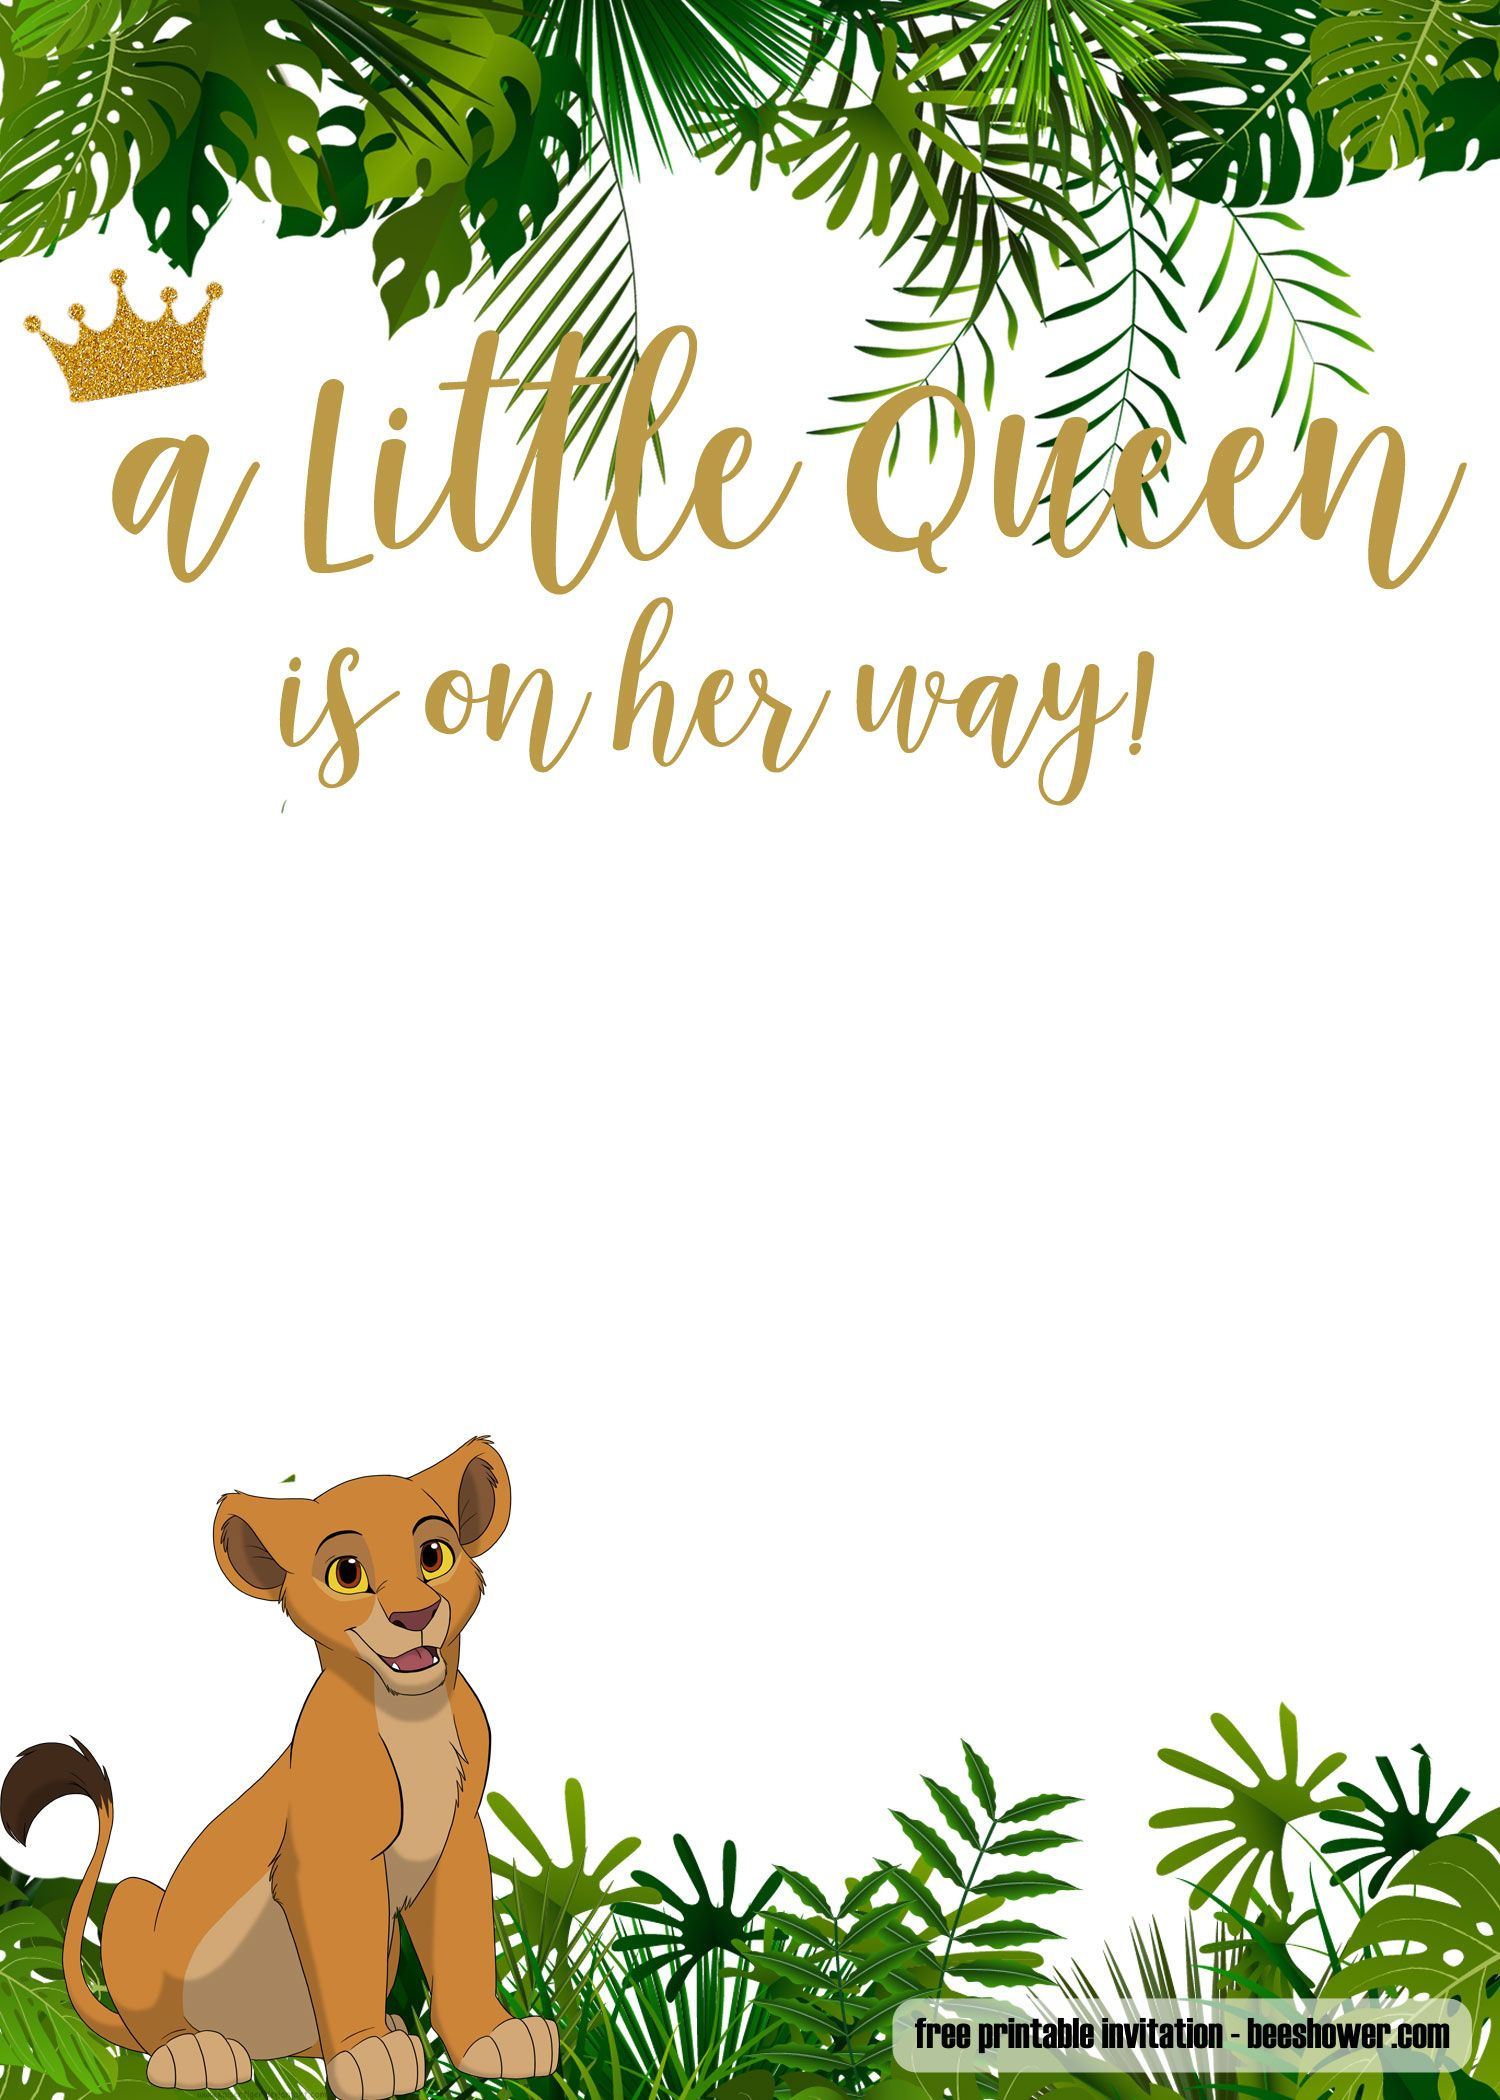 Free Printable Lion King Baby Shower Invitations | Free Printable - Free Printable Lion King Baby Shower Invitations